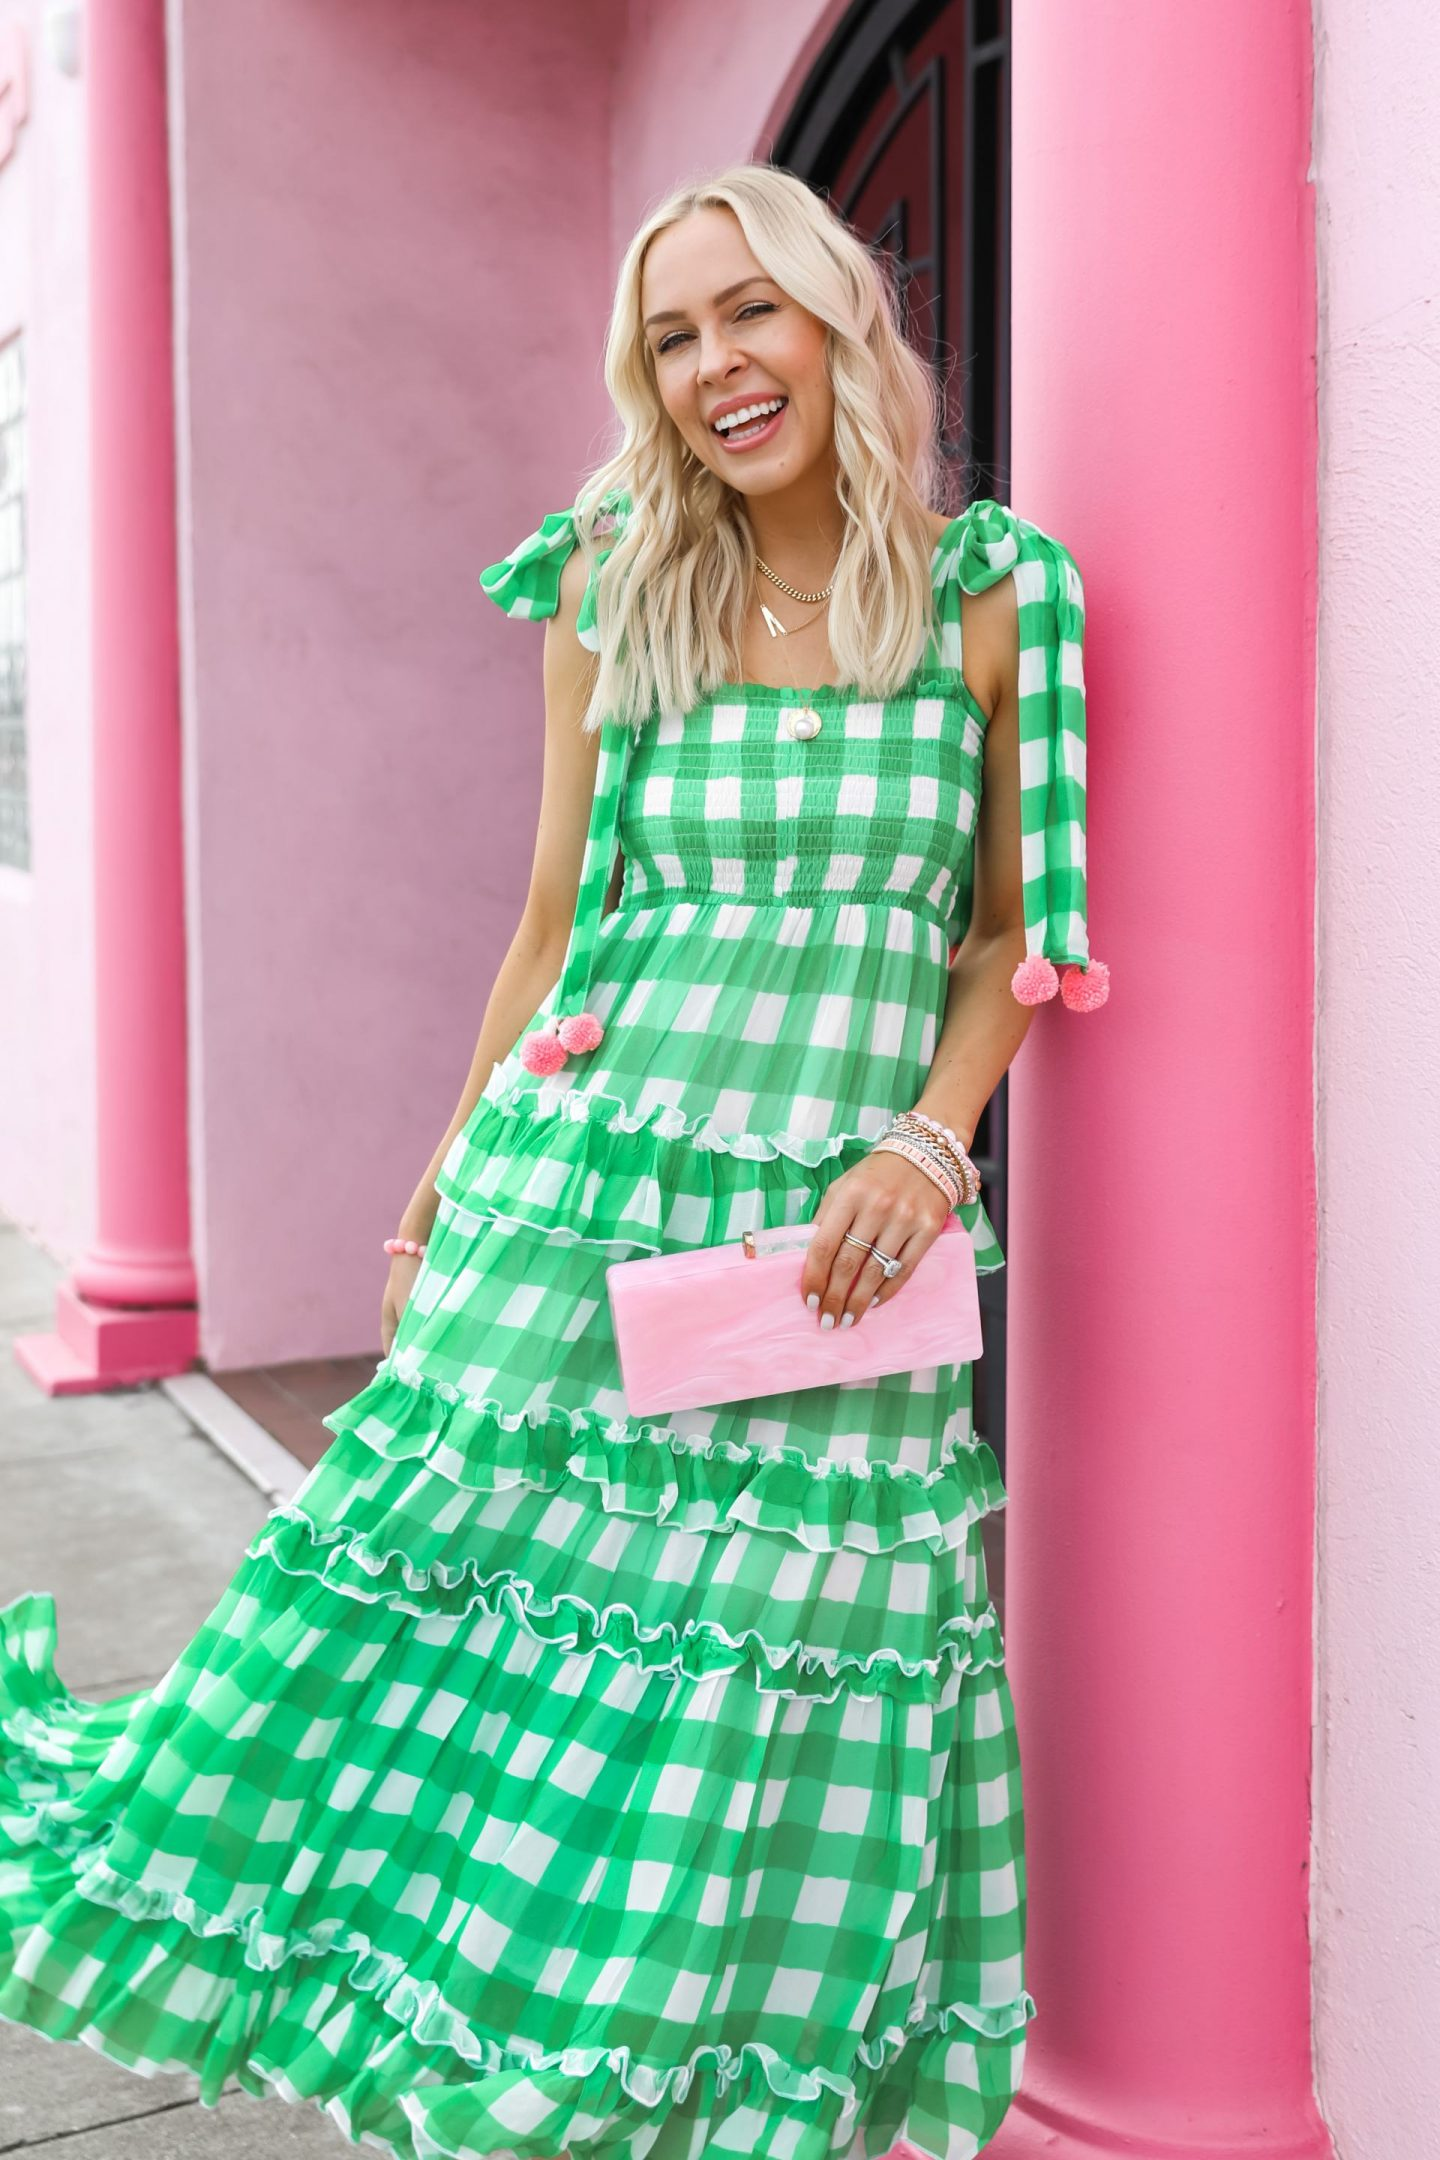 Save vs. splurge gingham favorites from greens to blush pastels style inspiration, by Lombard & Fifth Veronica Levy.